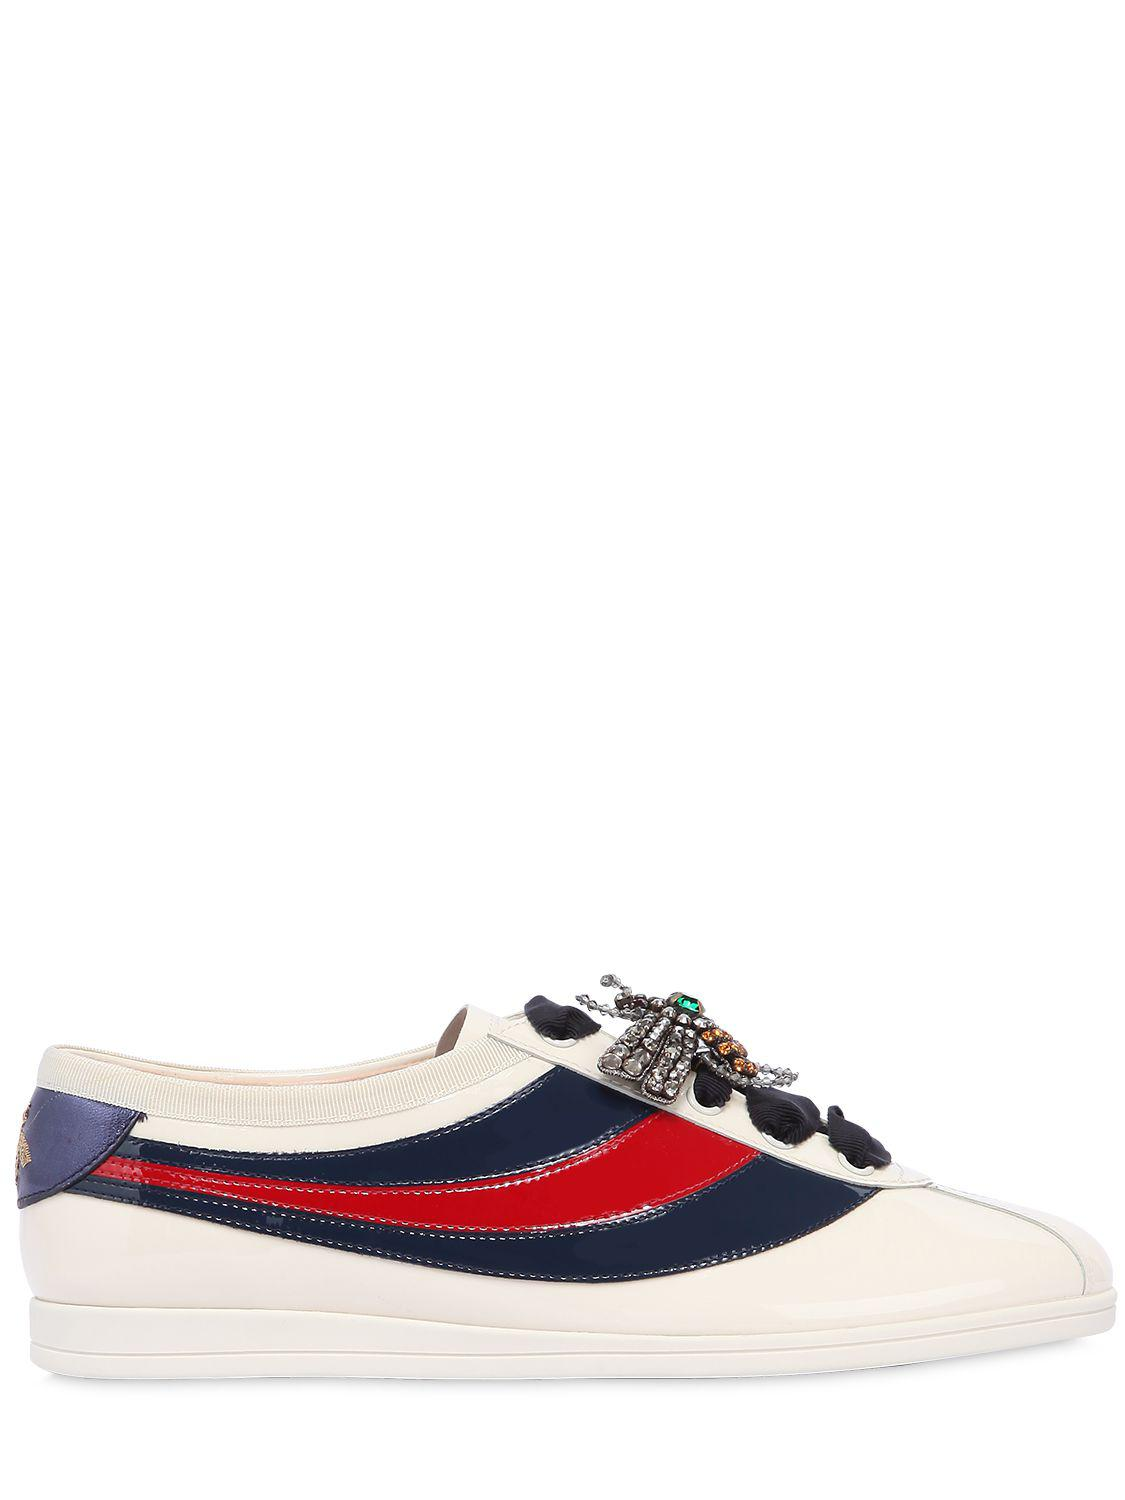 3e70e1d22f7 Gucci 10mm Falacer Patent Leather Sneakers in Blue - Lyst